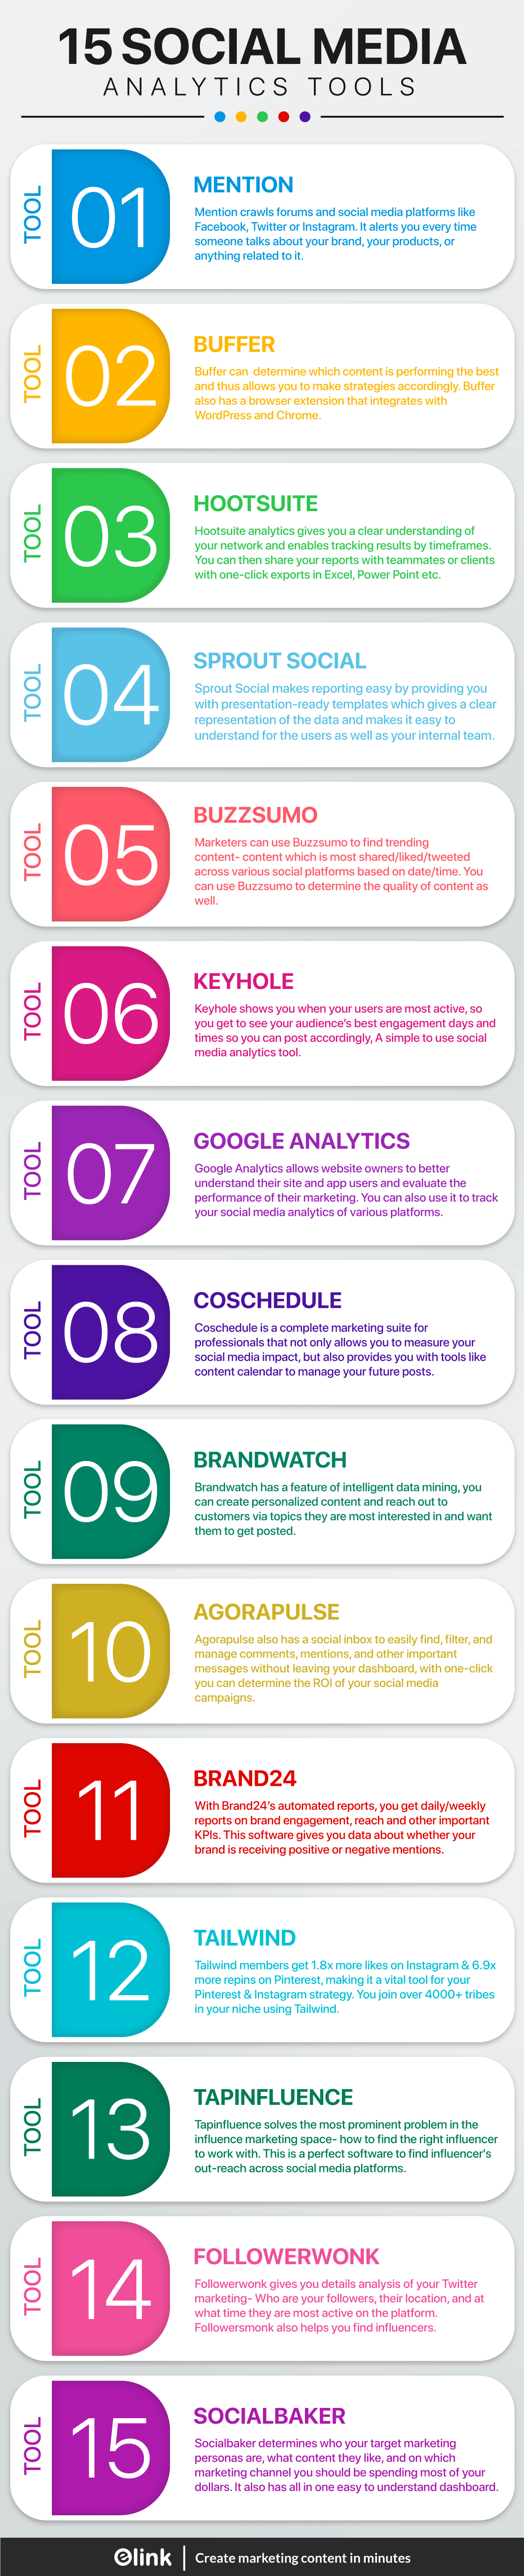 15-Social-Media-Analytics-Tools-Infographic